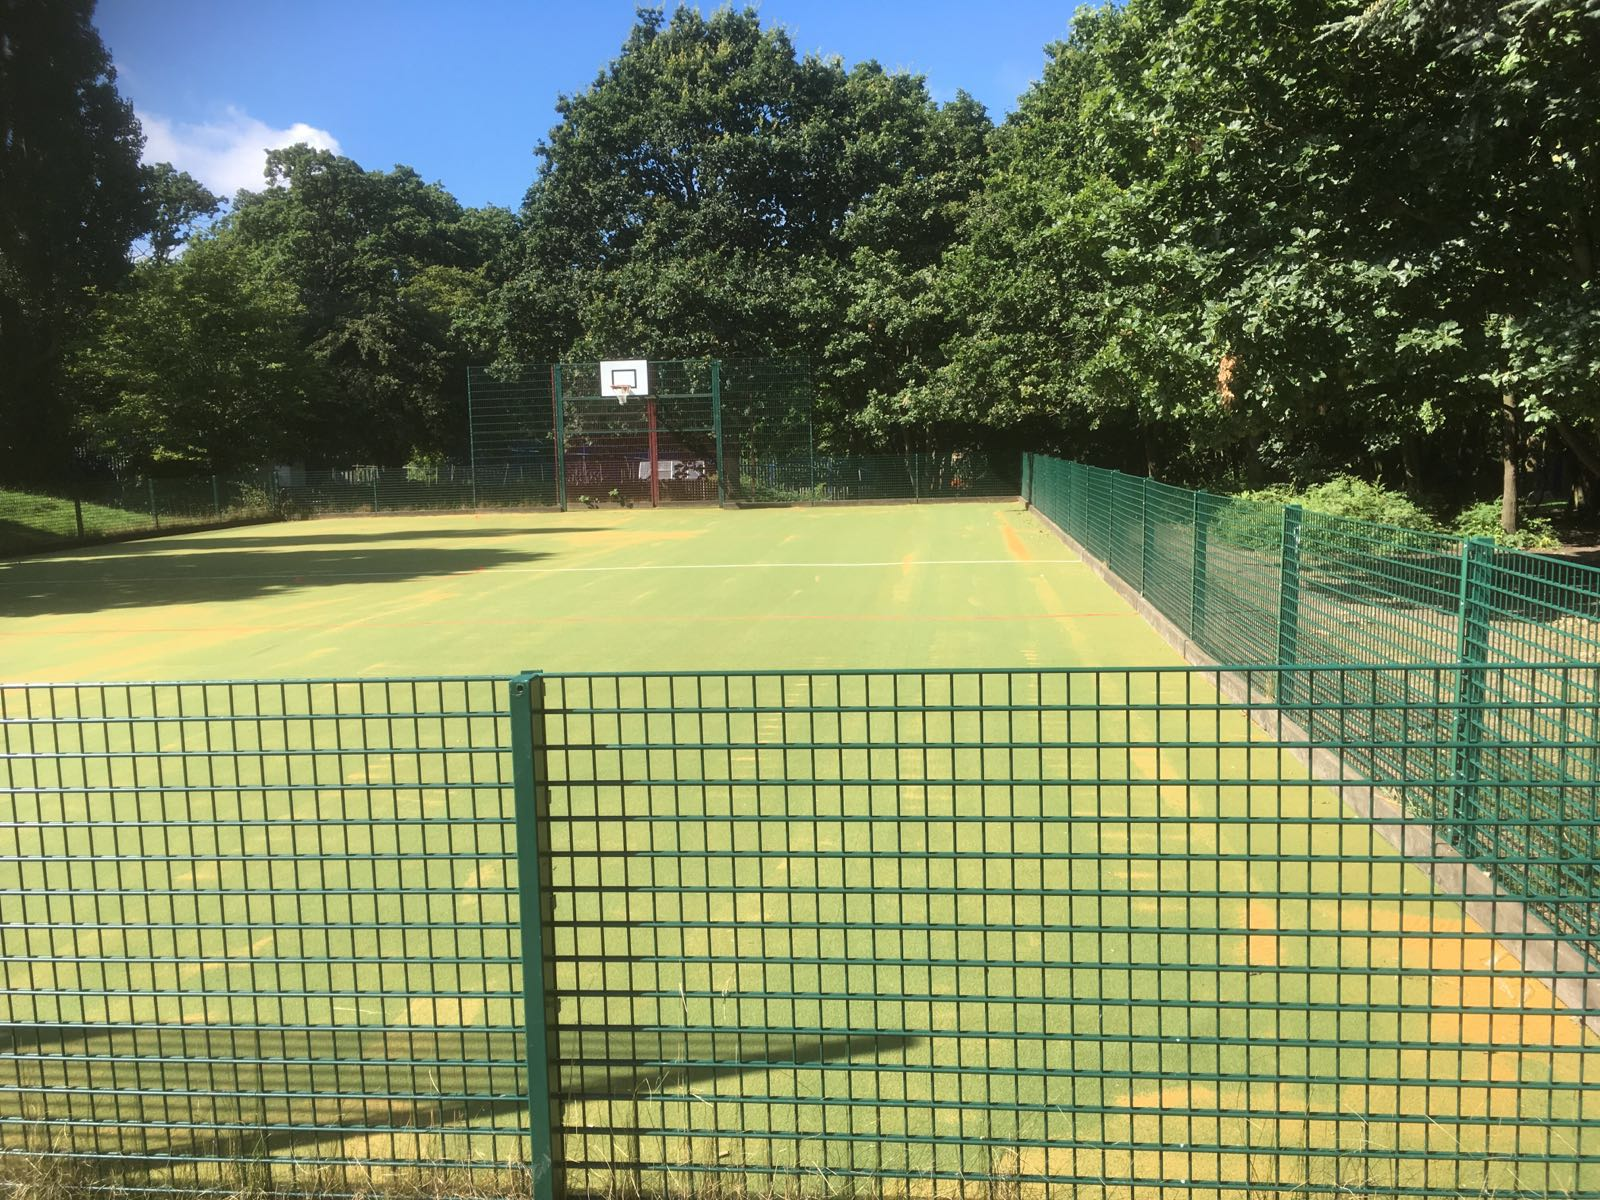 Revitalise your sports venue with a new Matchplay II surface, suitable for a wide variety of sports.